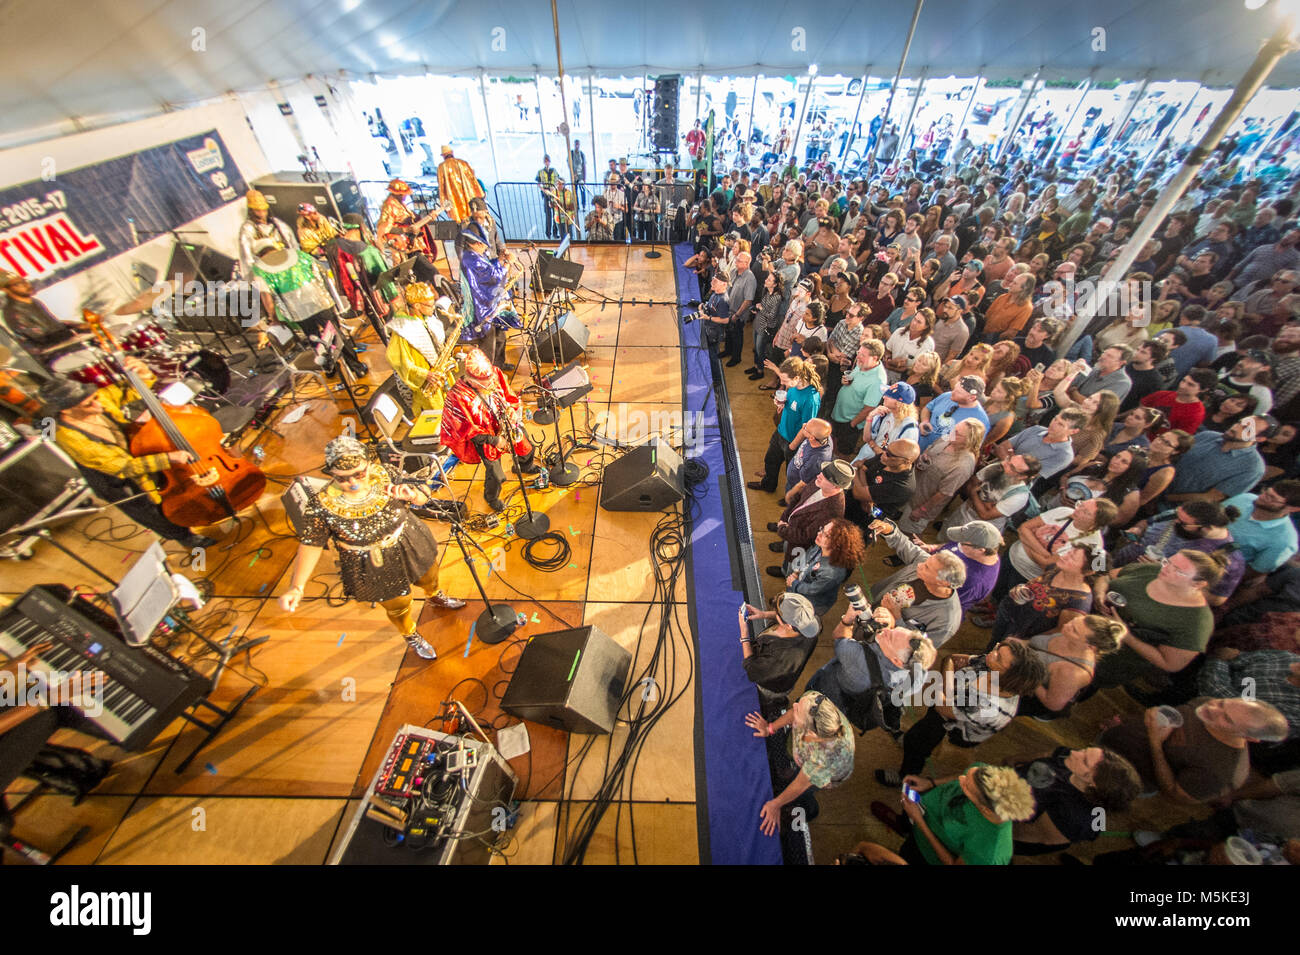 The cosmic musical group Sun Ra Arkestra preforming together on stage with crowd tentatively watching at National - Stock Image